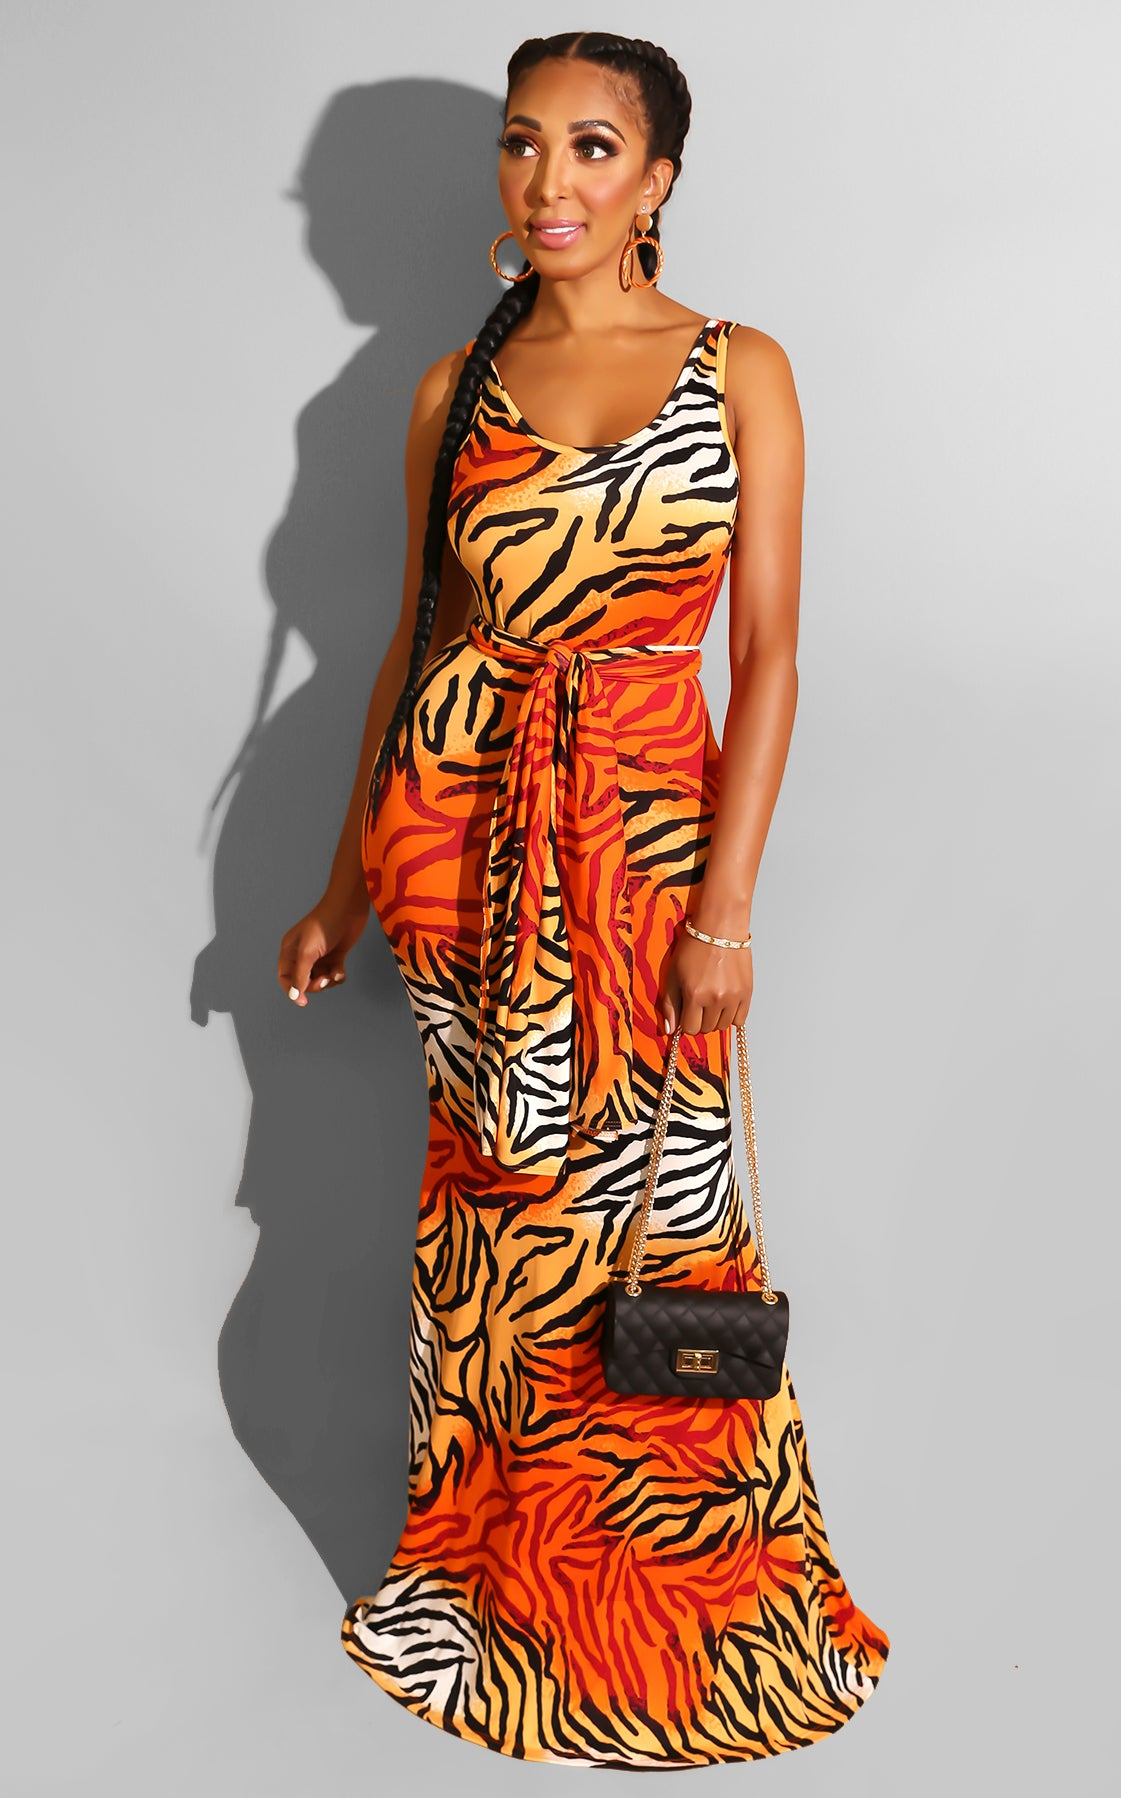 Eye of the Tiger Dress